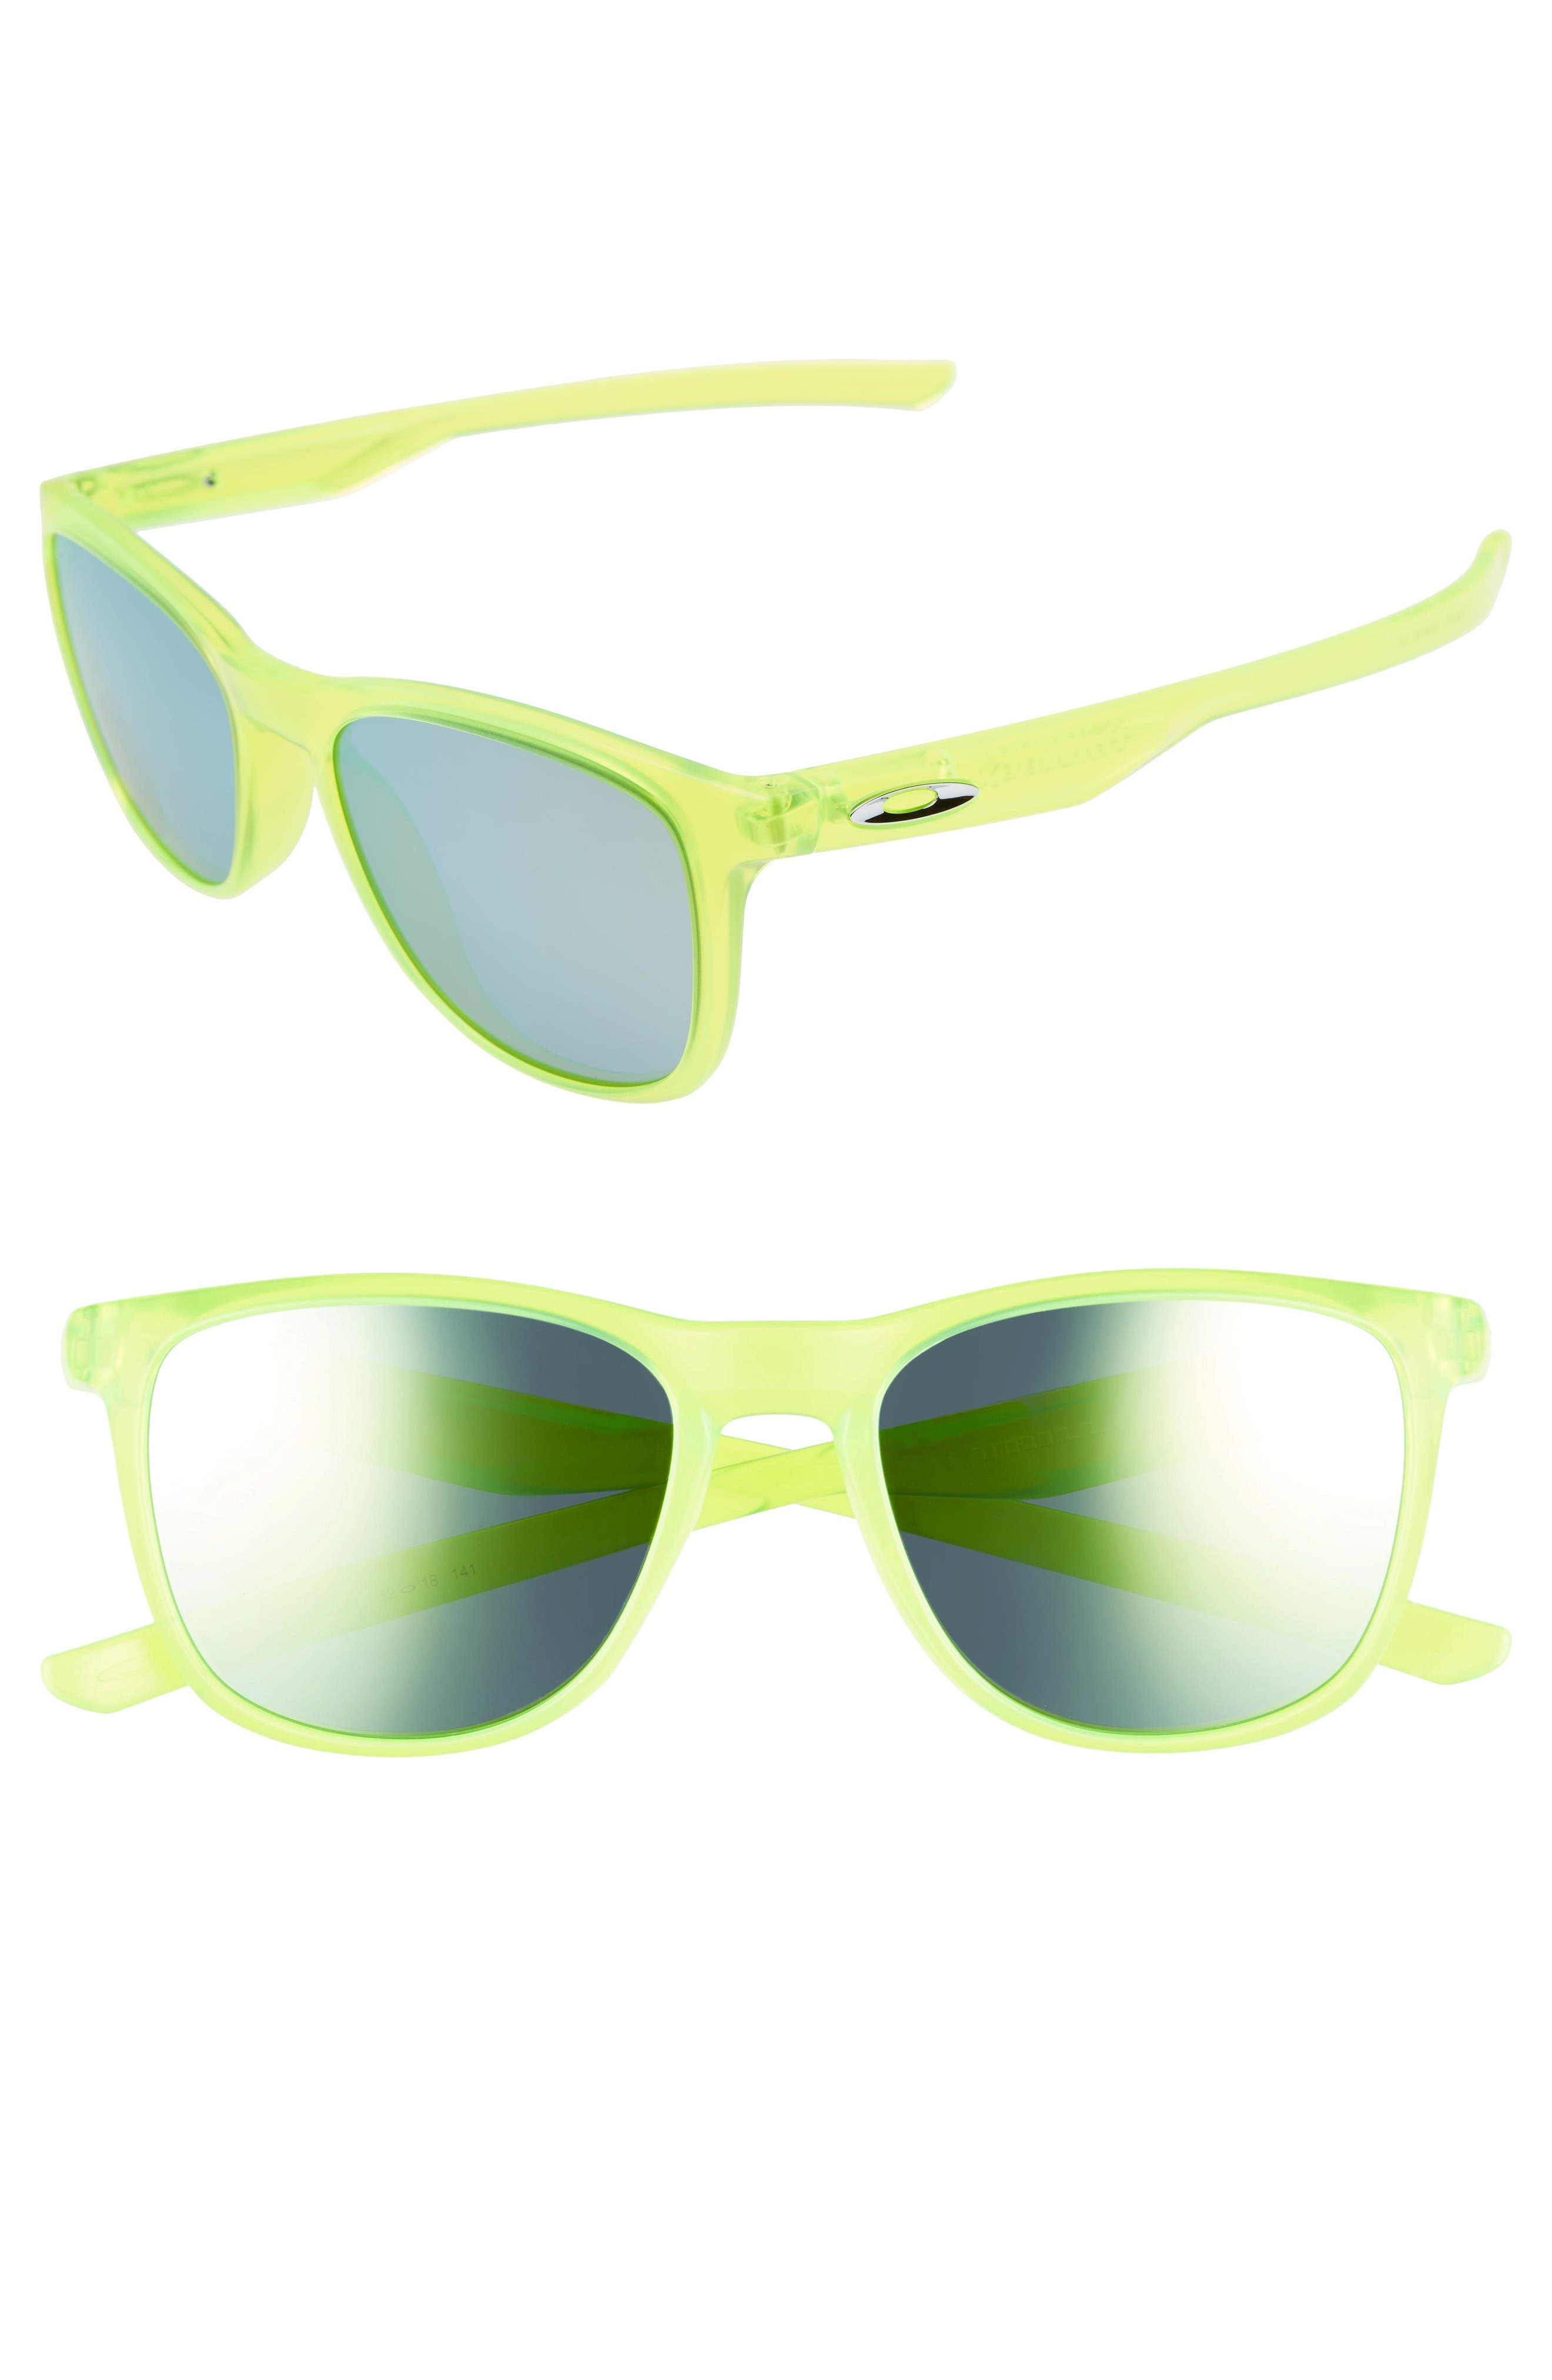 Trillbe X 52mm Sunglasses,                             Main thumbnail 1, color,                             Uranium/ Emerald Iridium